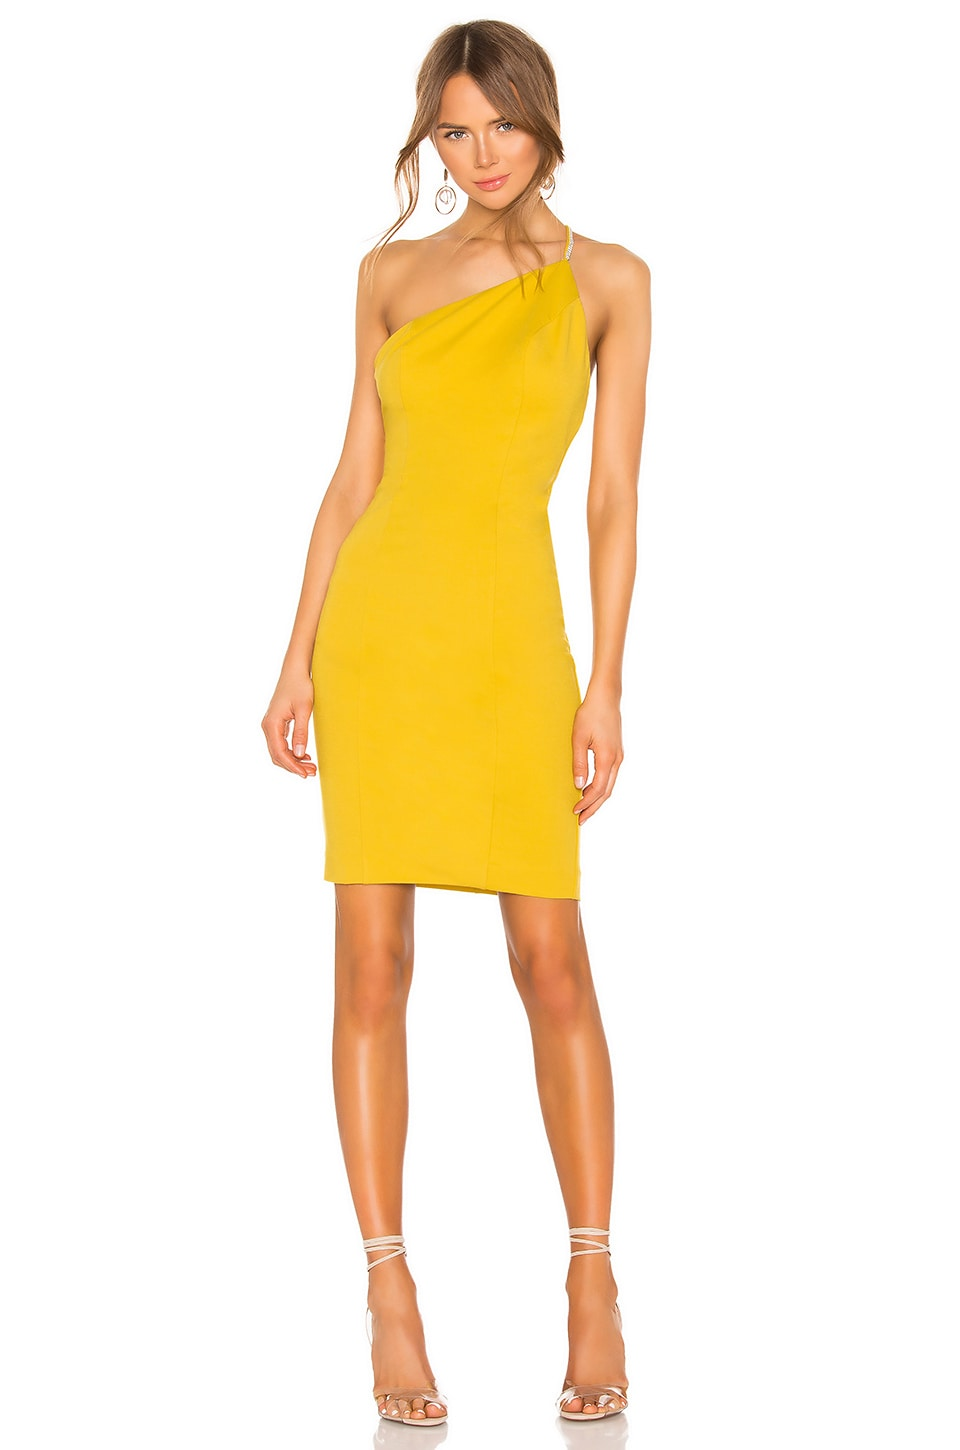 NBD Ciara Mini Dress in Saffron Yellow